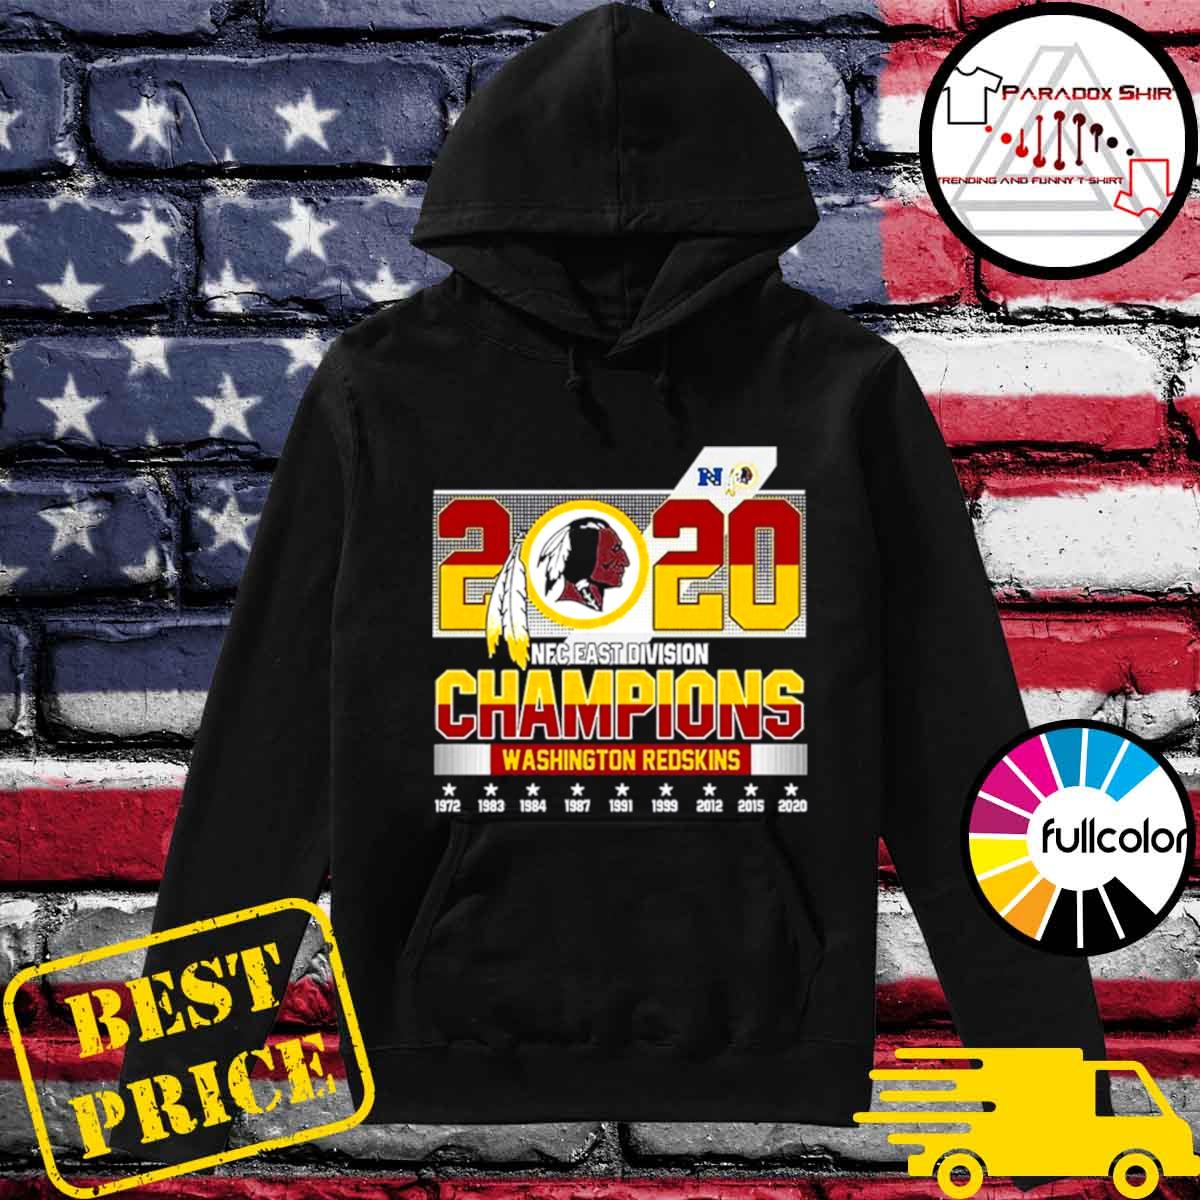 2020 NFC East Division Champions Washington Redskins s Hoodie